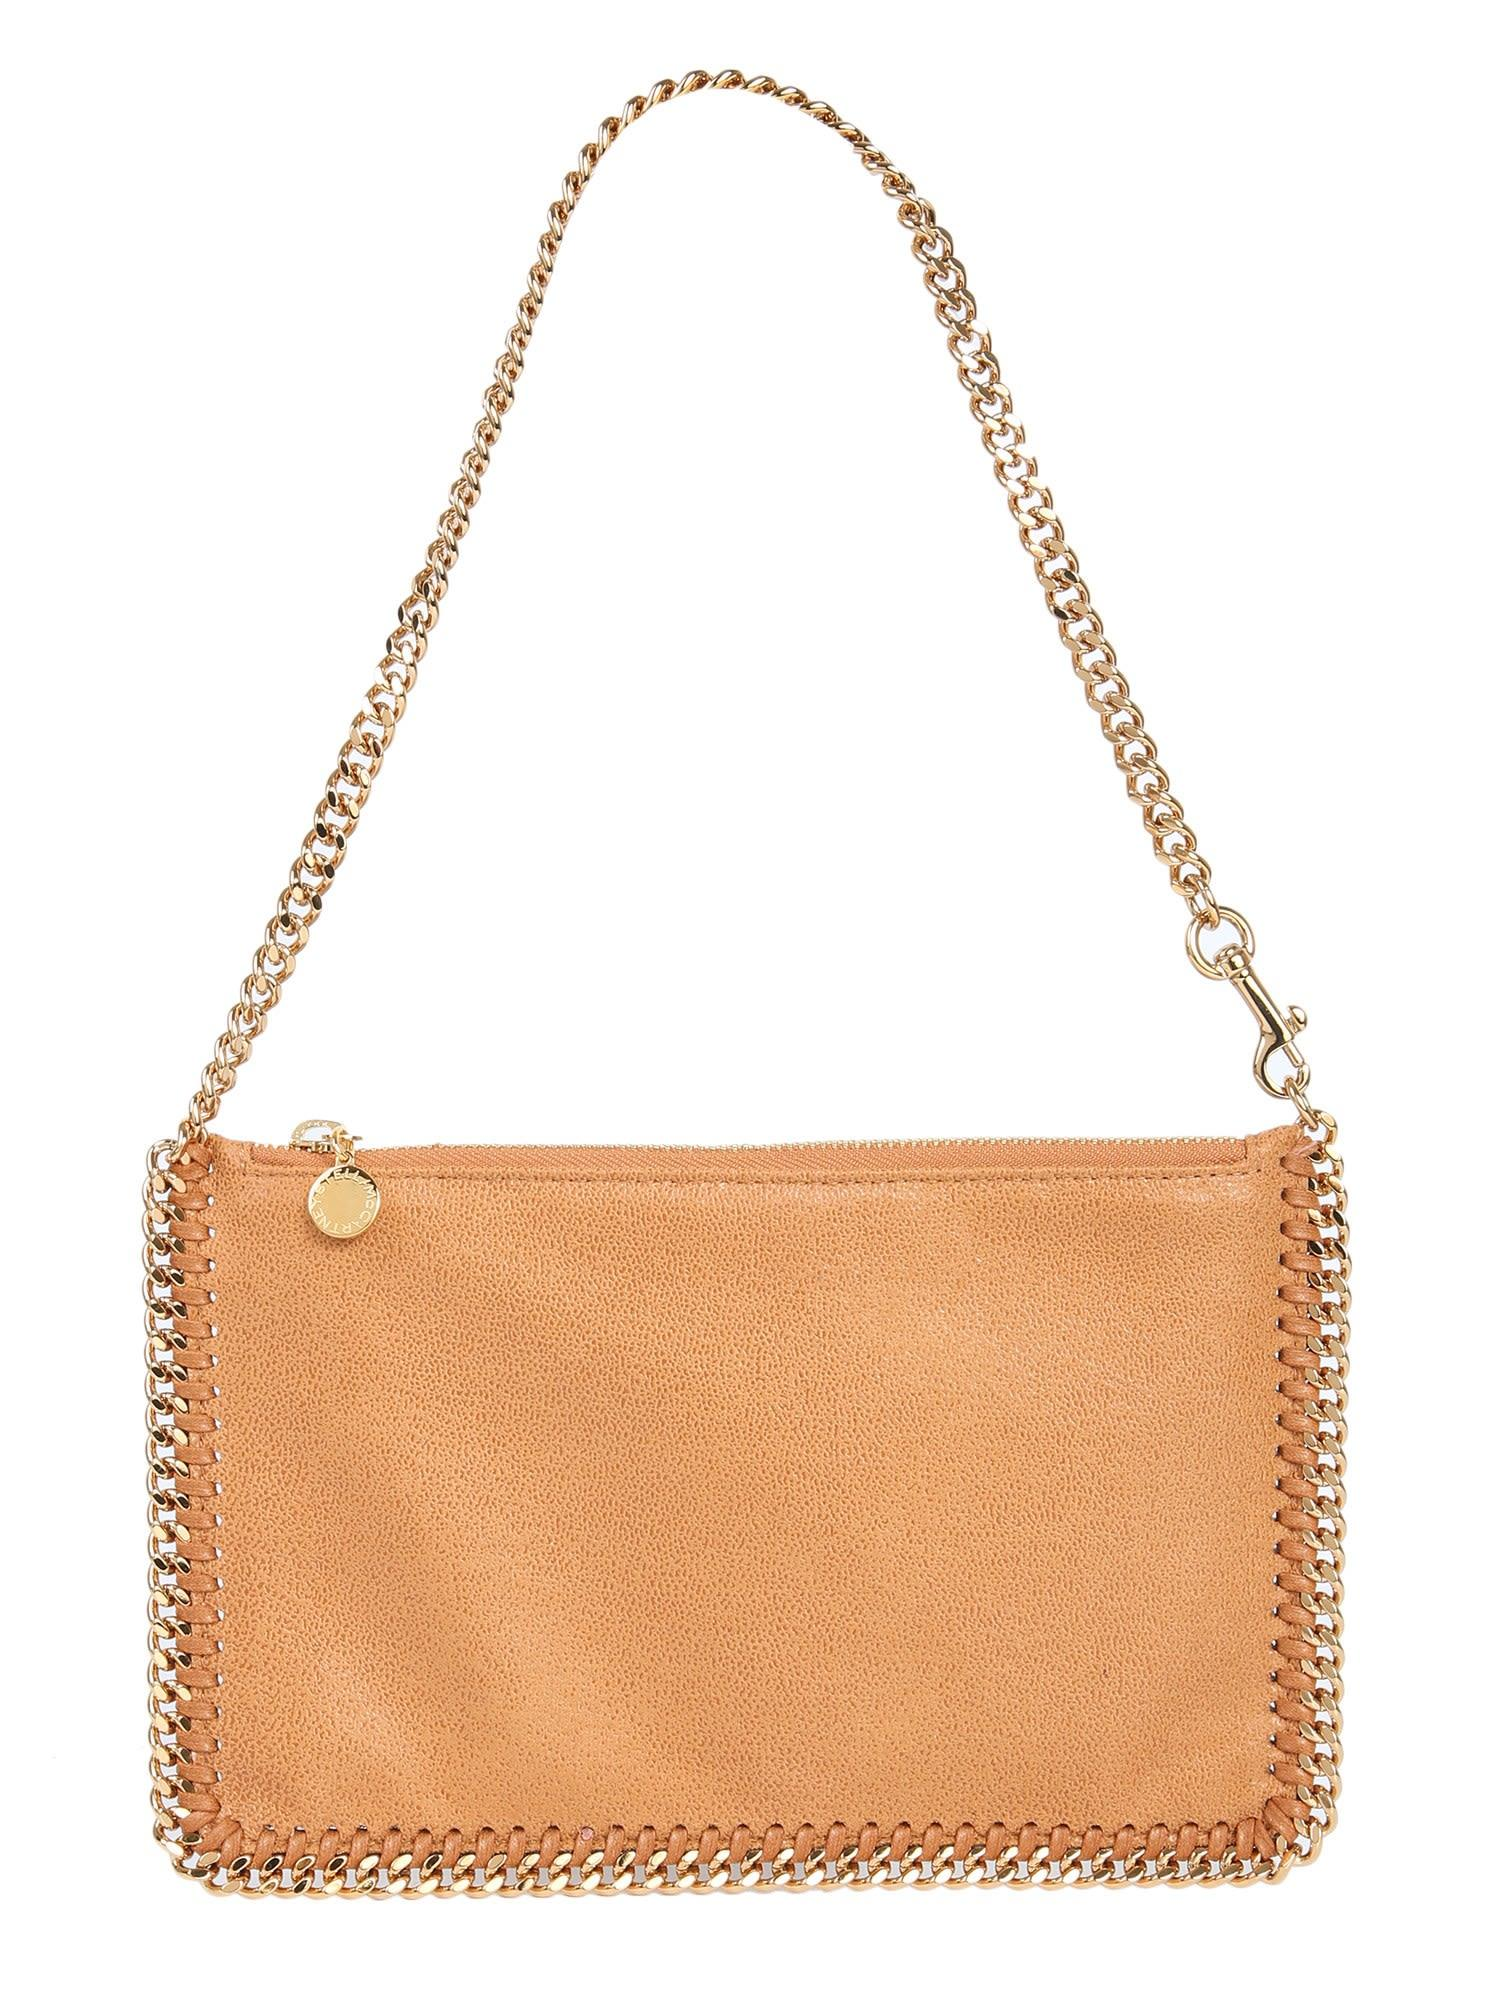 Stella Mccartney Falabella Purse In Marrone